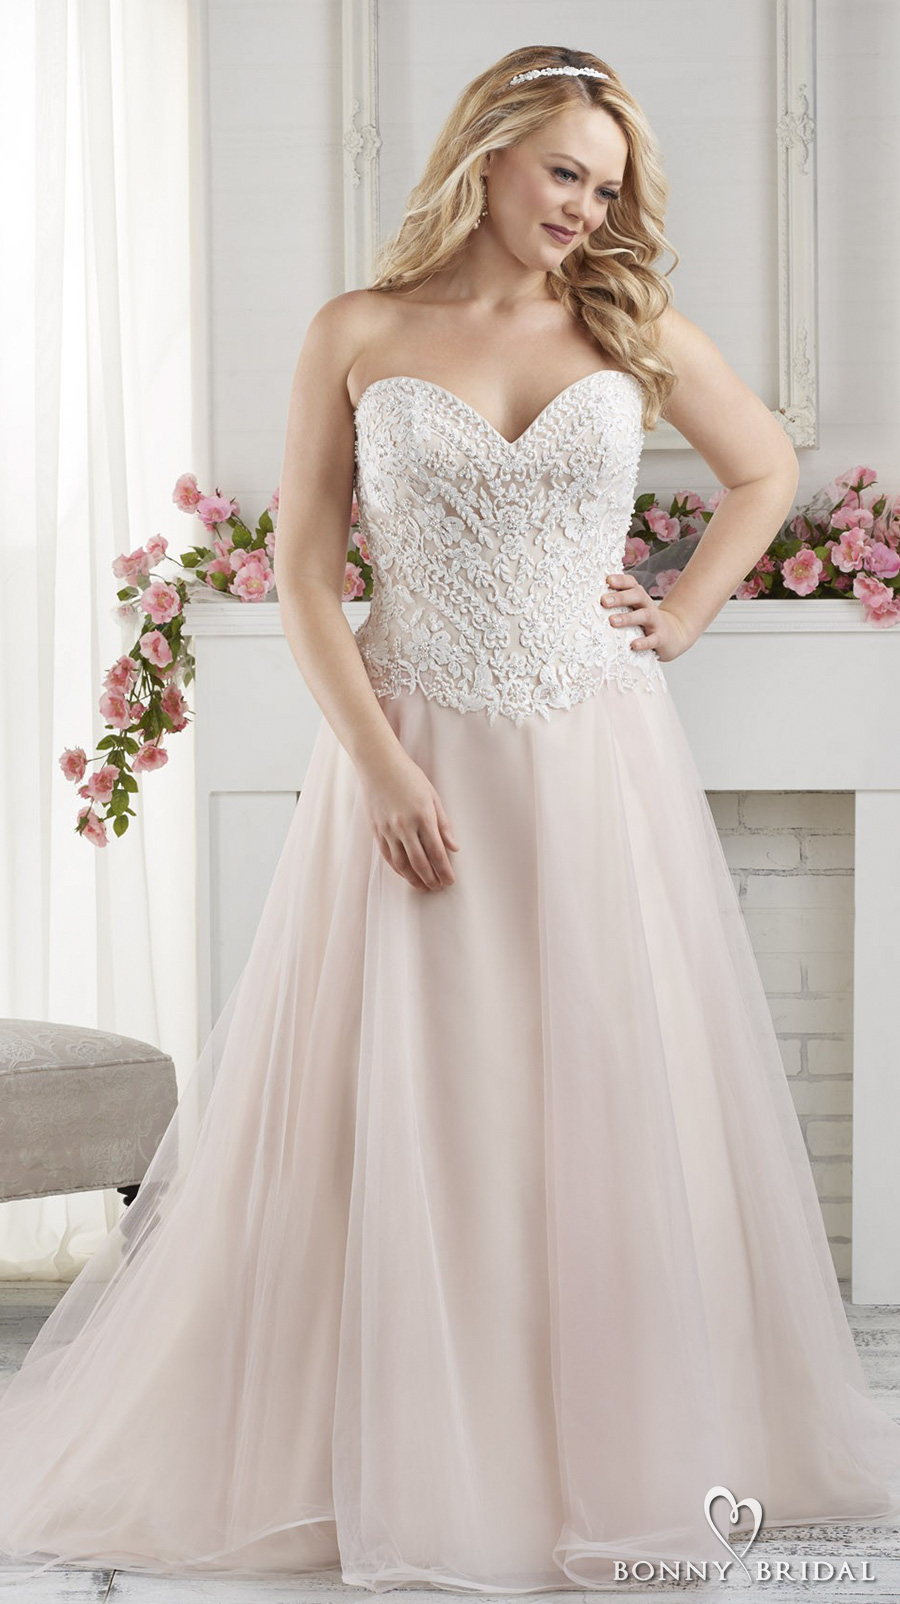 Trubridal Wedding Blog | Wedding Dress Archives - Trubridal Wedding Blog